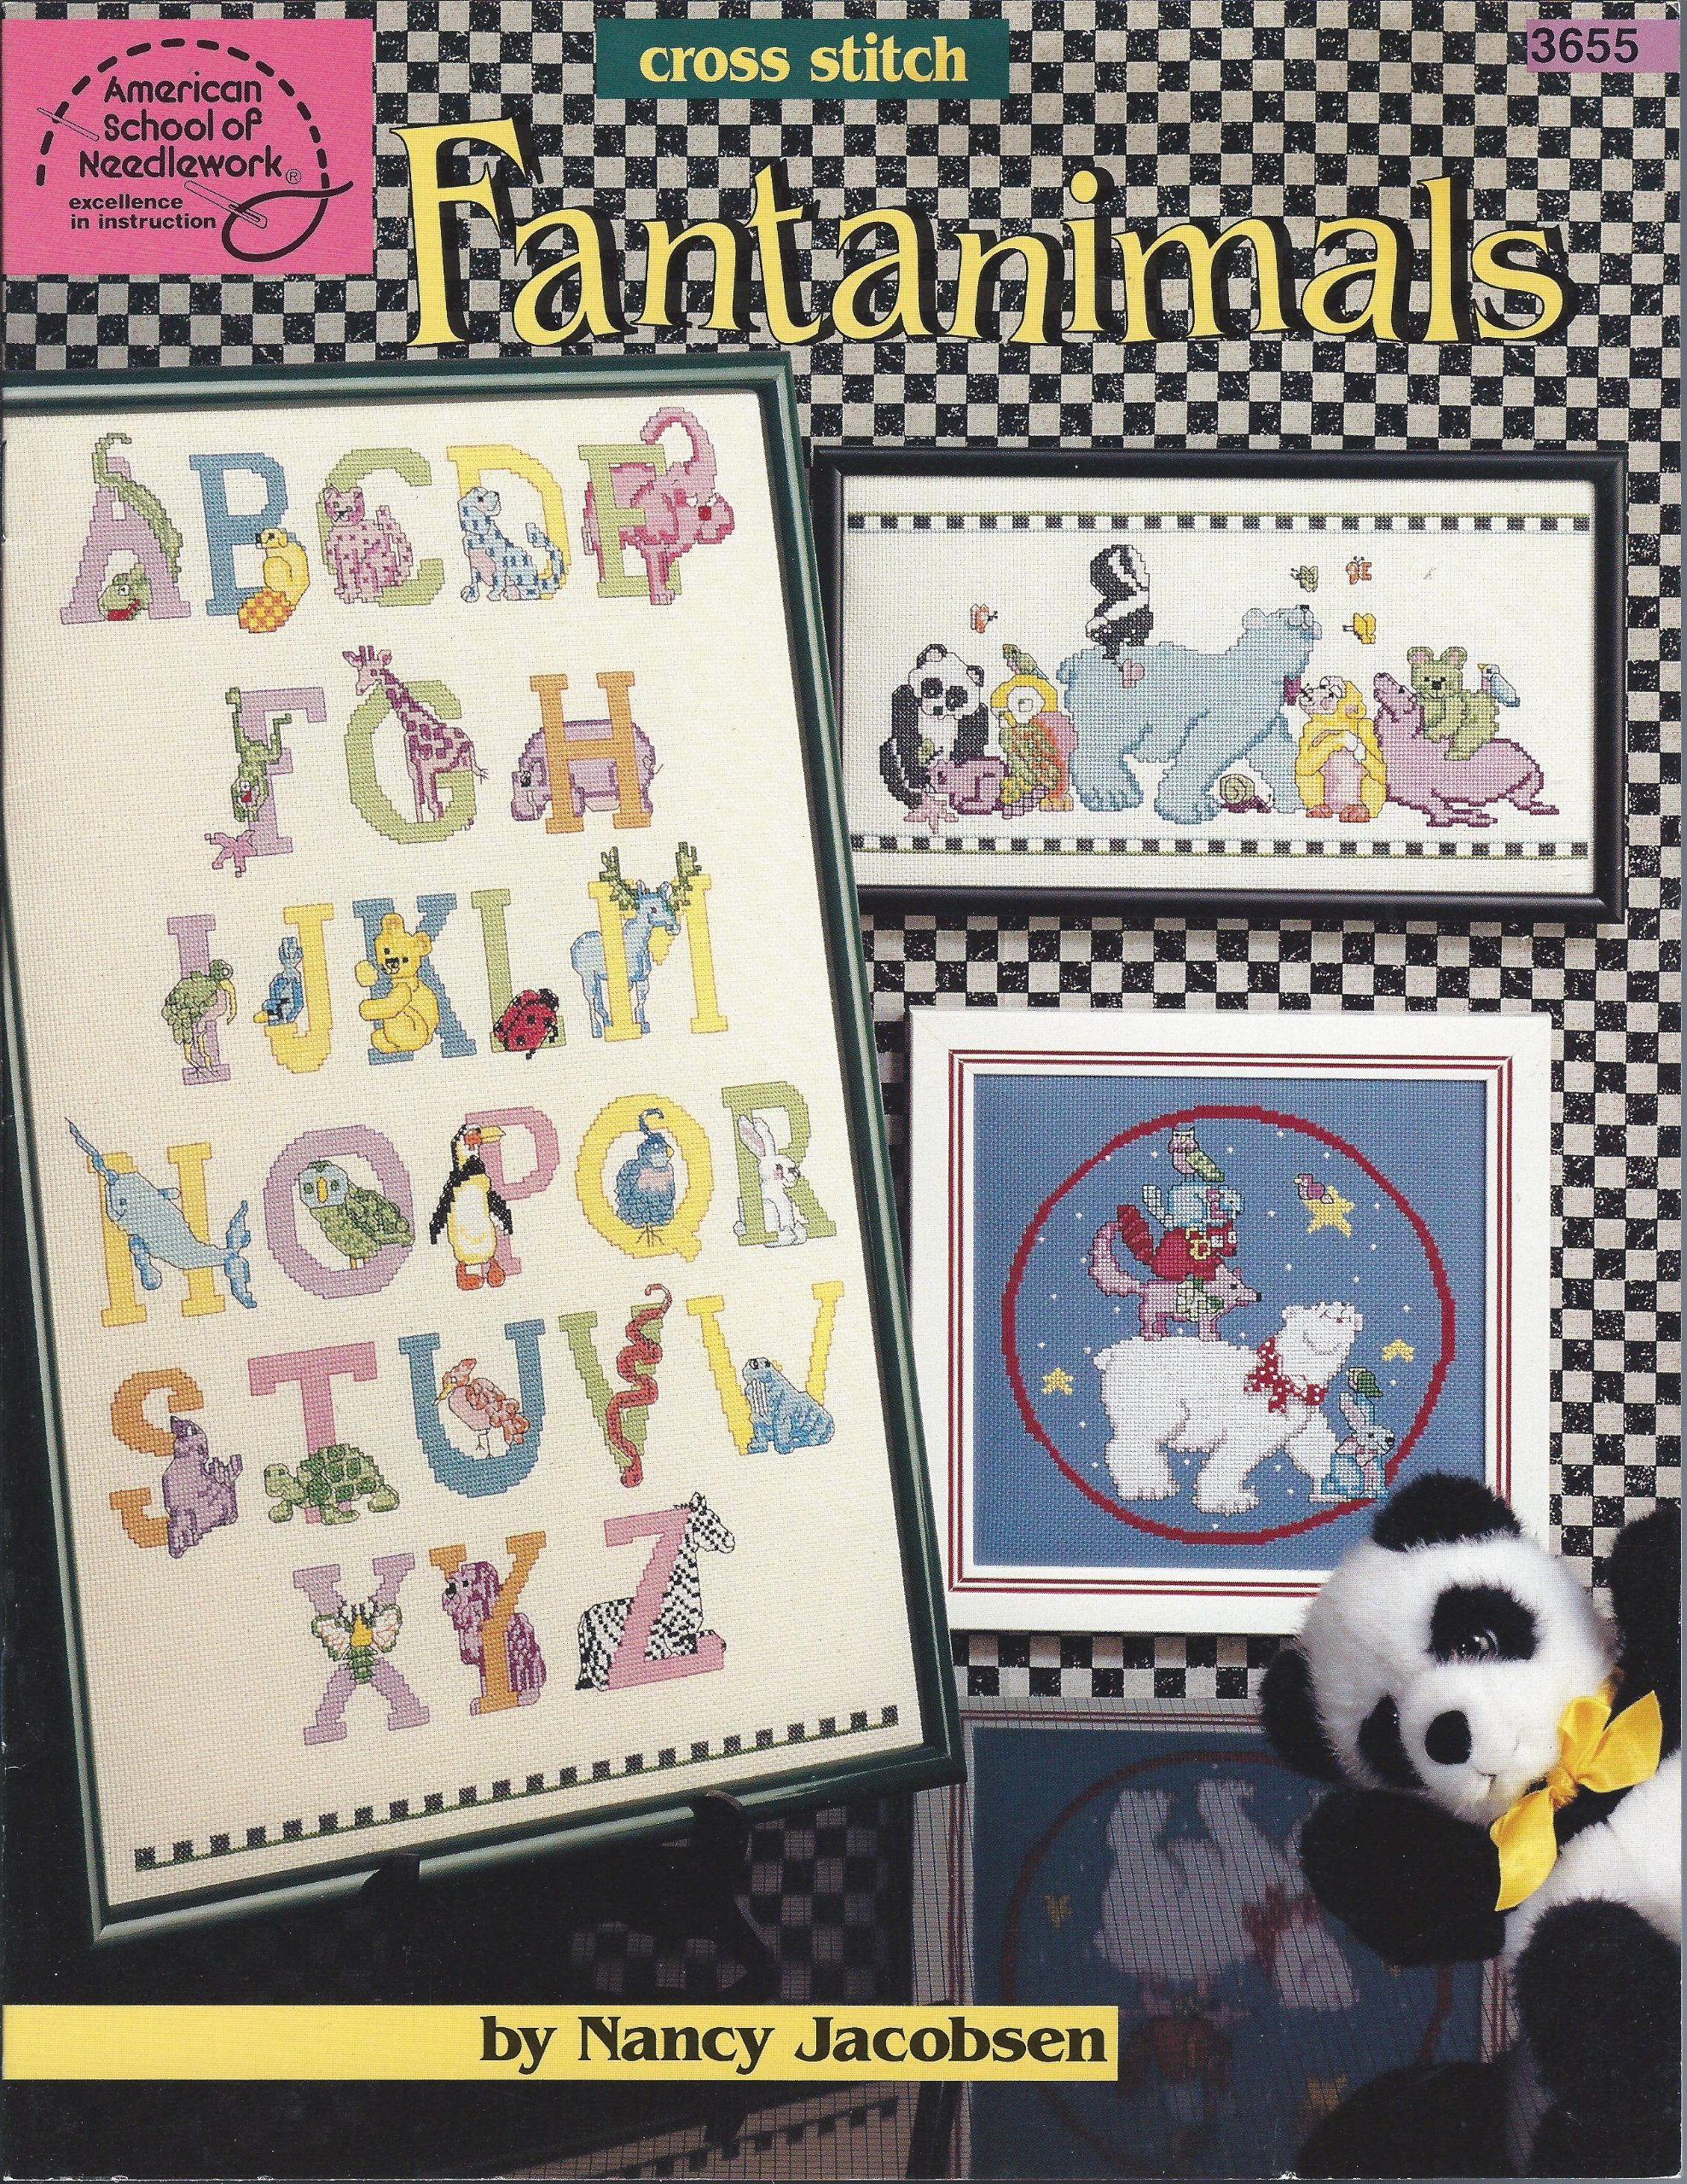 American School of Needlework 3655 Fantanimals by Nancy Jacobsen